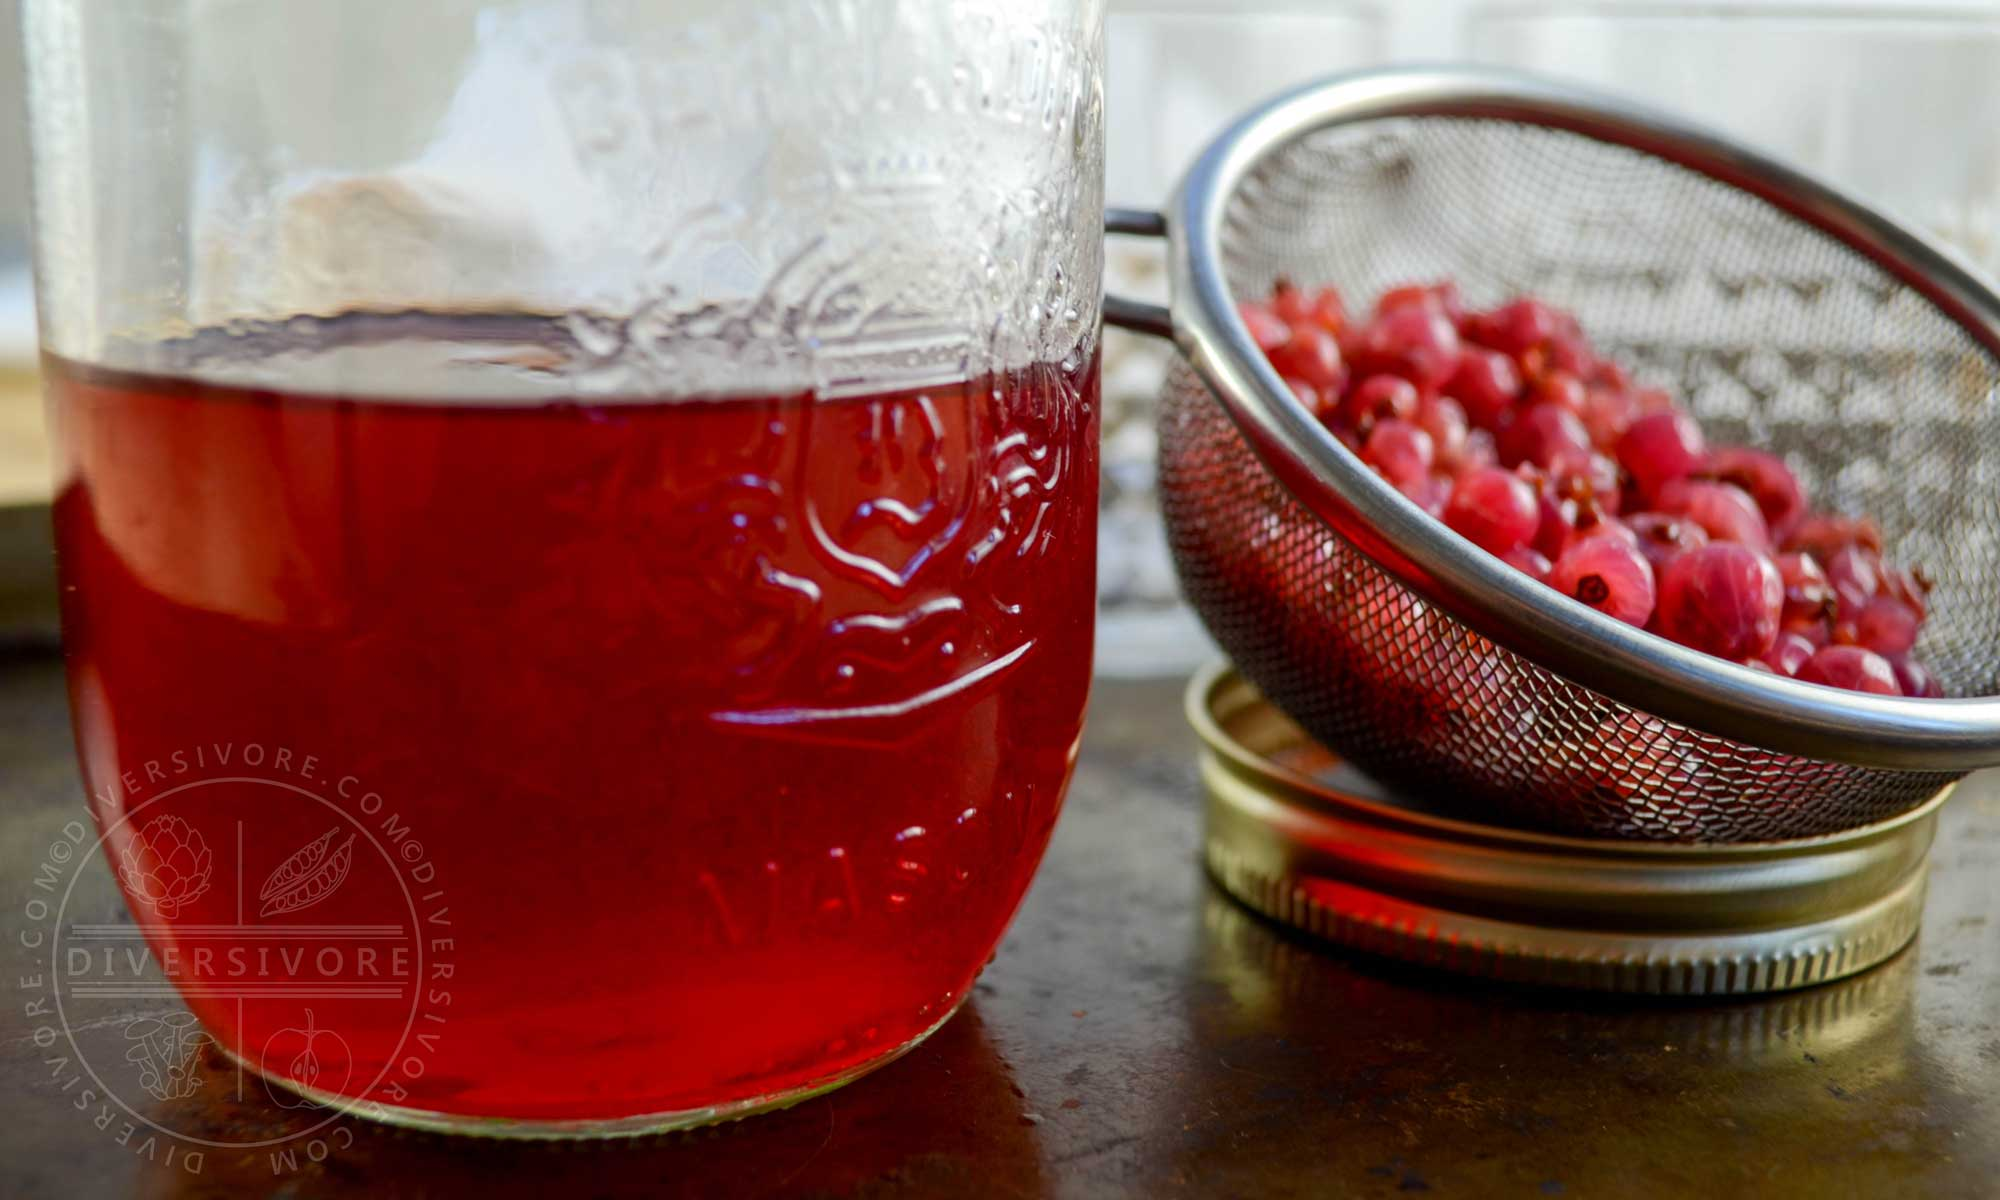 Red currant gin in a mason jar, shown beside a mesh strainer filled with leftover currants